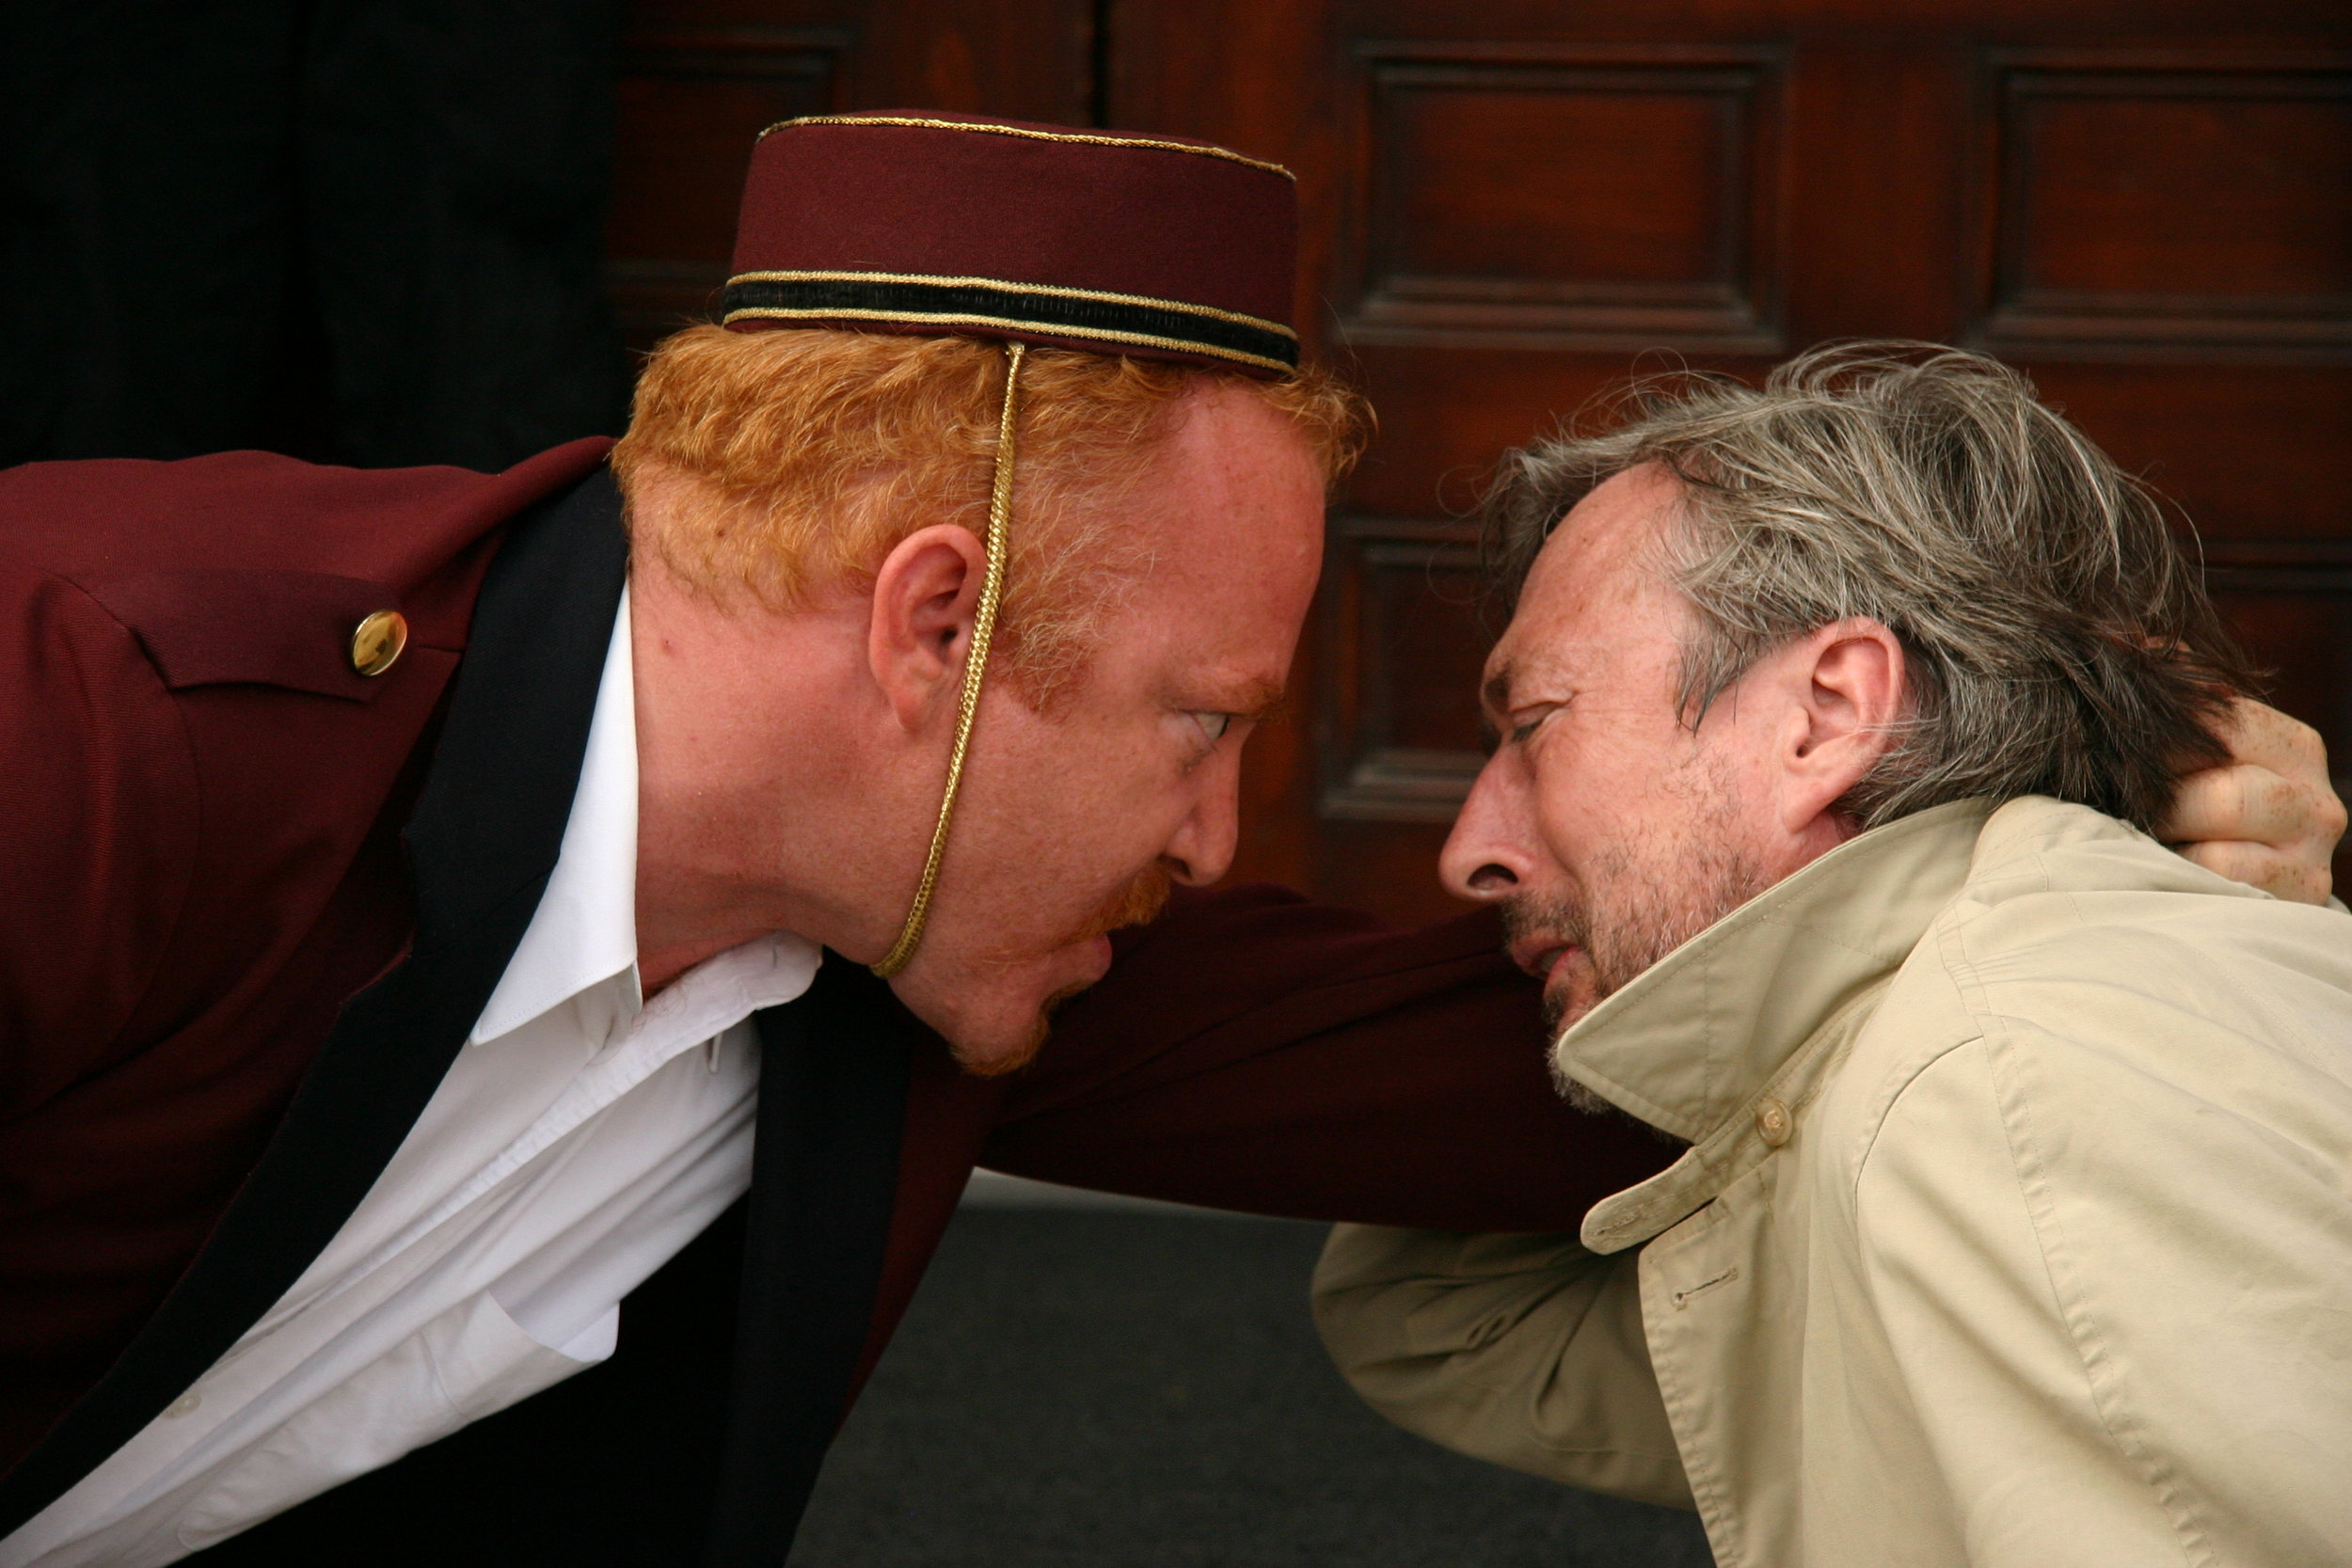 Dov Mickelson as The Concierge & Richard McMillan as The Man in  The Card Trick  by Brendan Gall